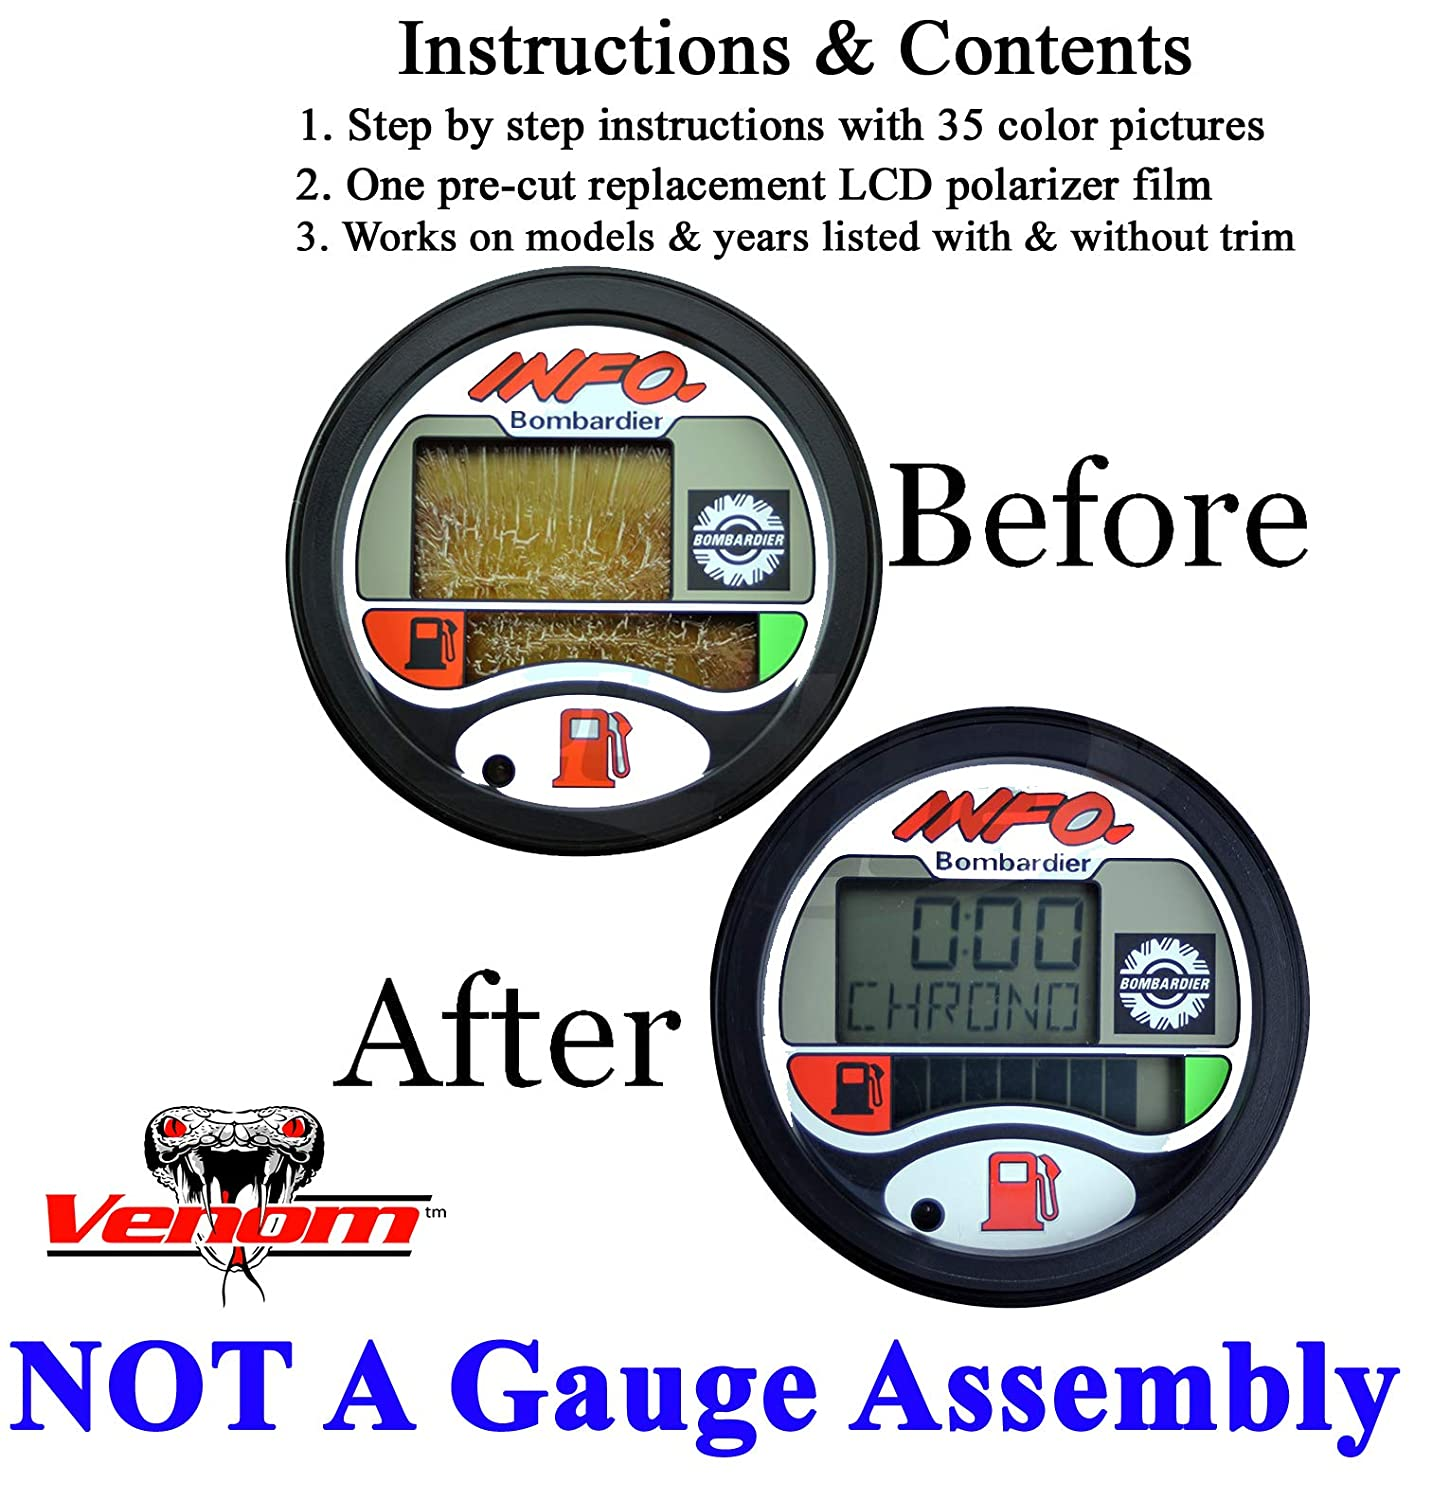 Compatible With SEA-DOO Repair Kit for LCD Info Gauge Center Display (Fits  MANY 1996-05 GTX GSX GTI LRV RX XP/LTD DI RFI, See Ad For Exact Model &